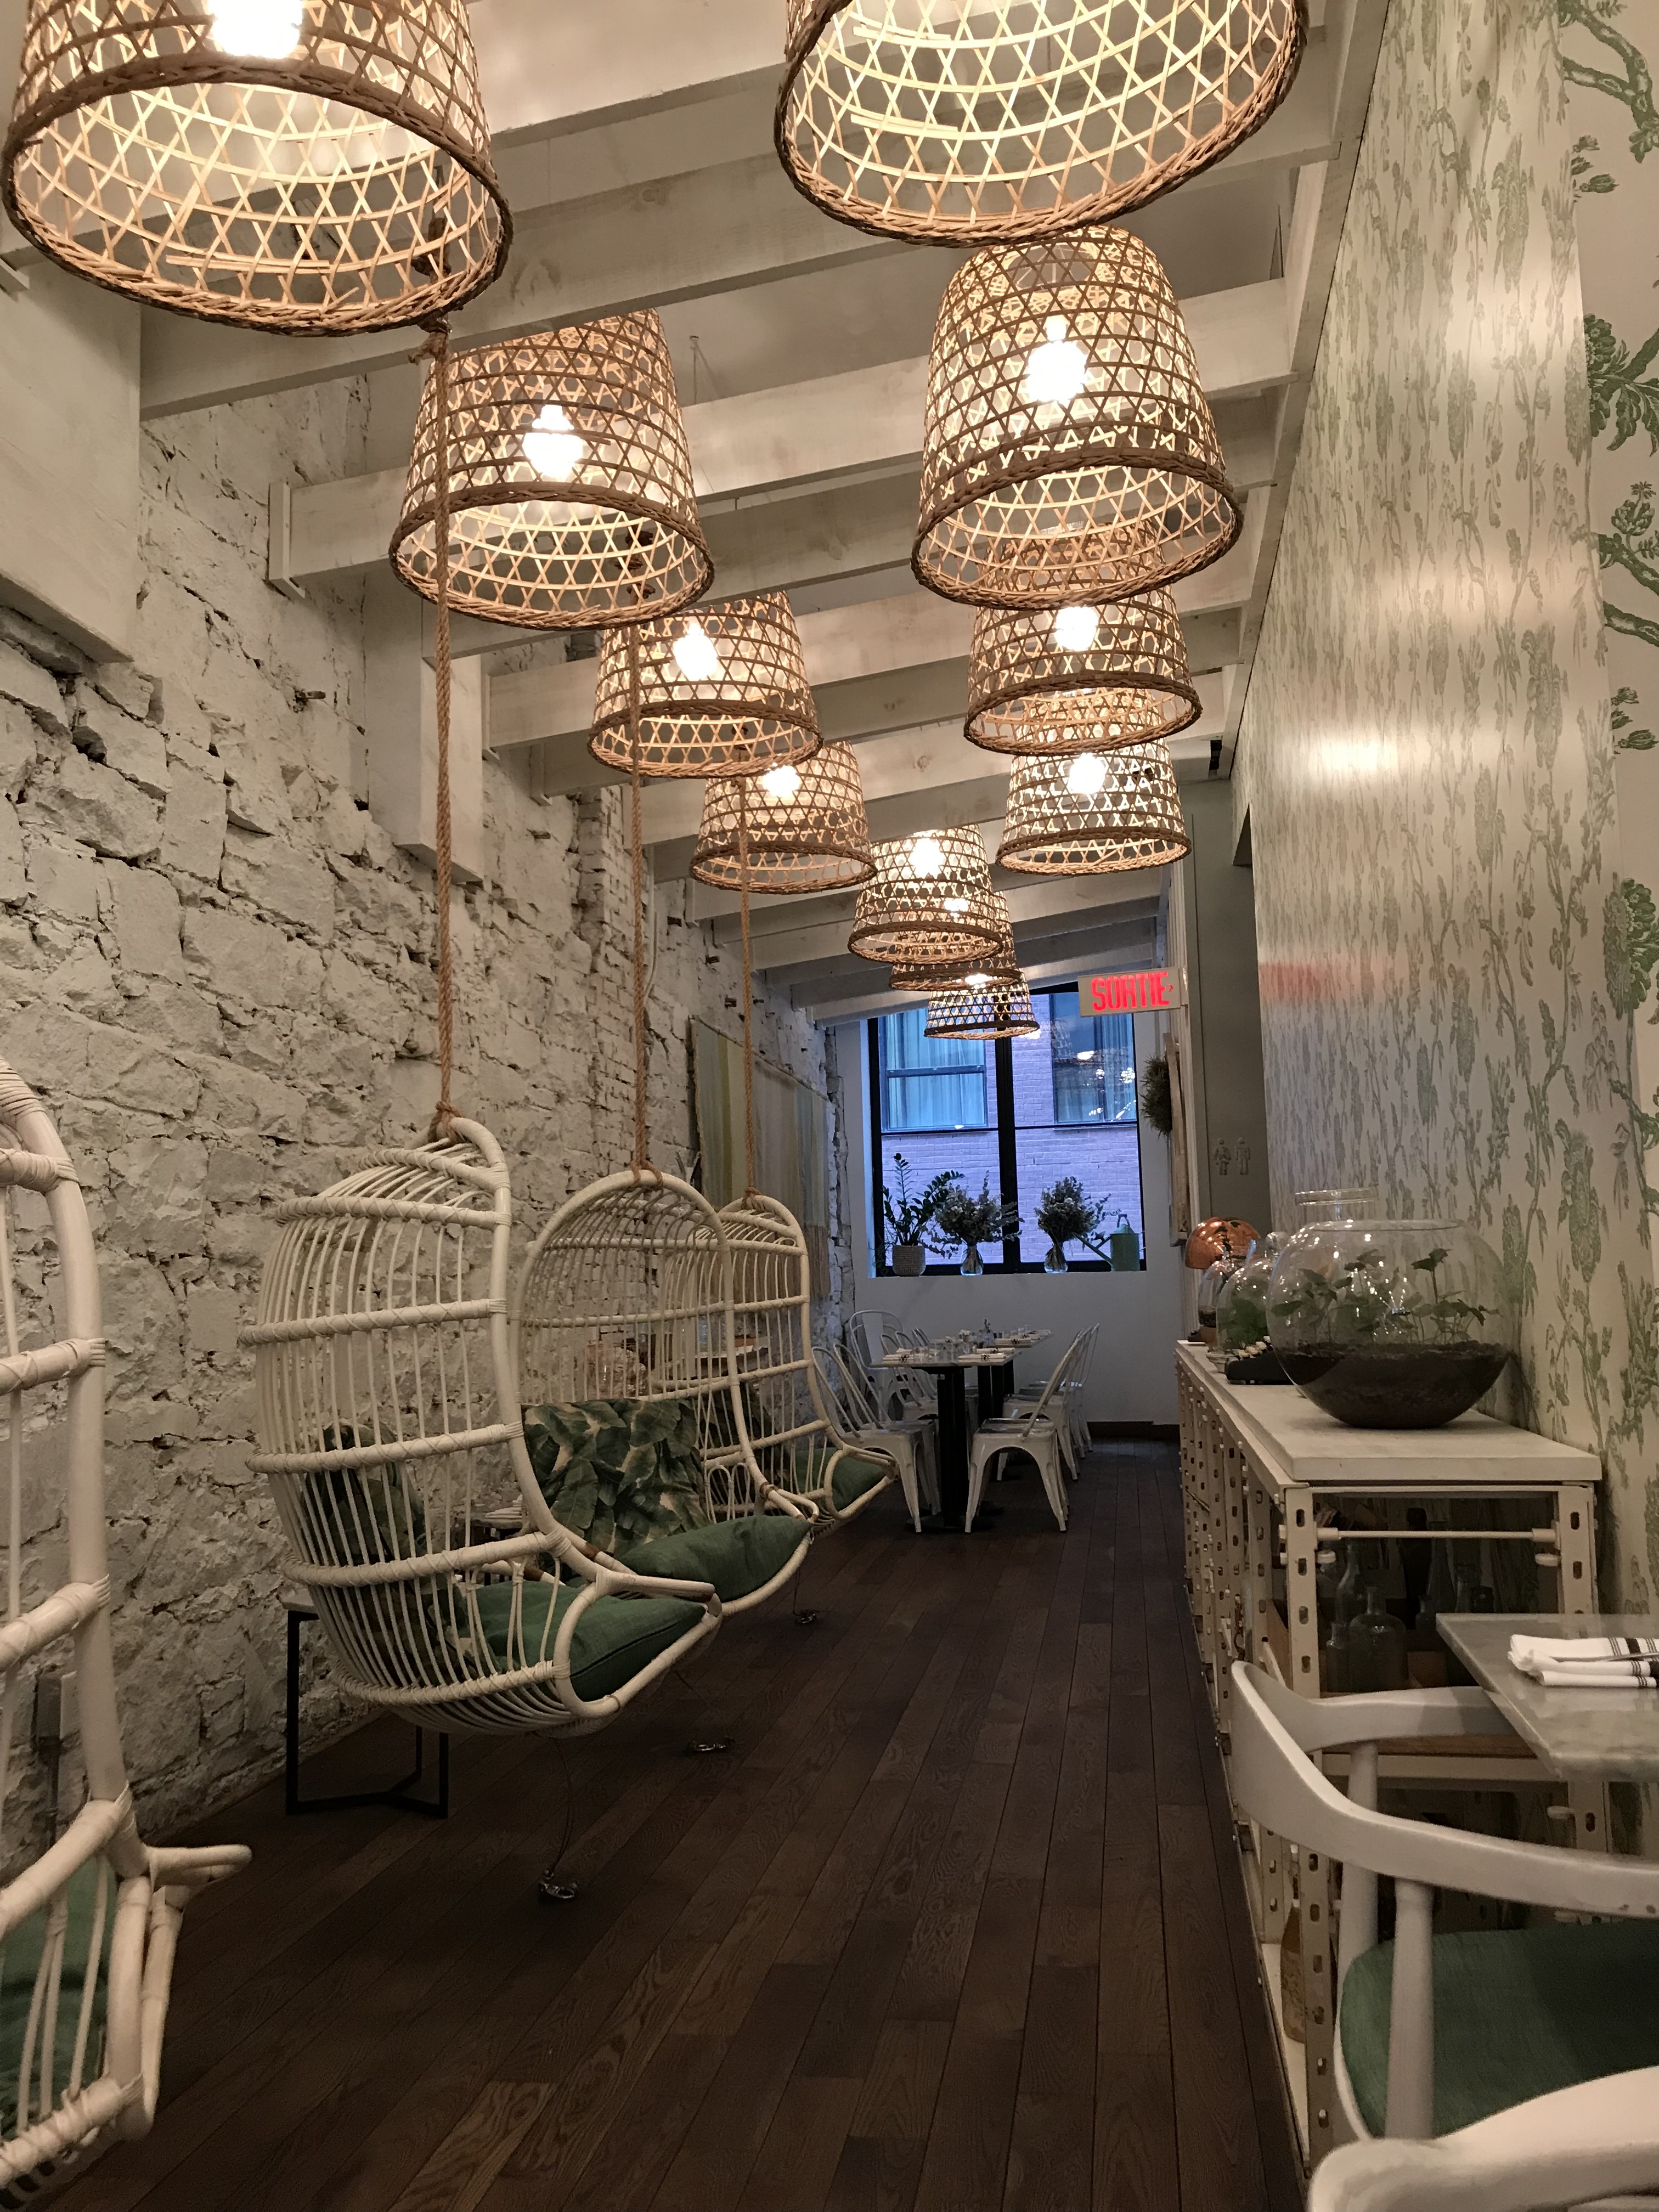 The interior of Lov, with whitewashed brick walls, hanging wicker chairs, and rattan light fixtures.